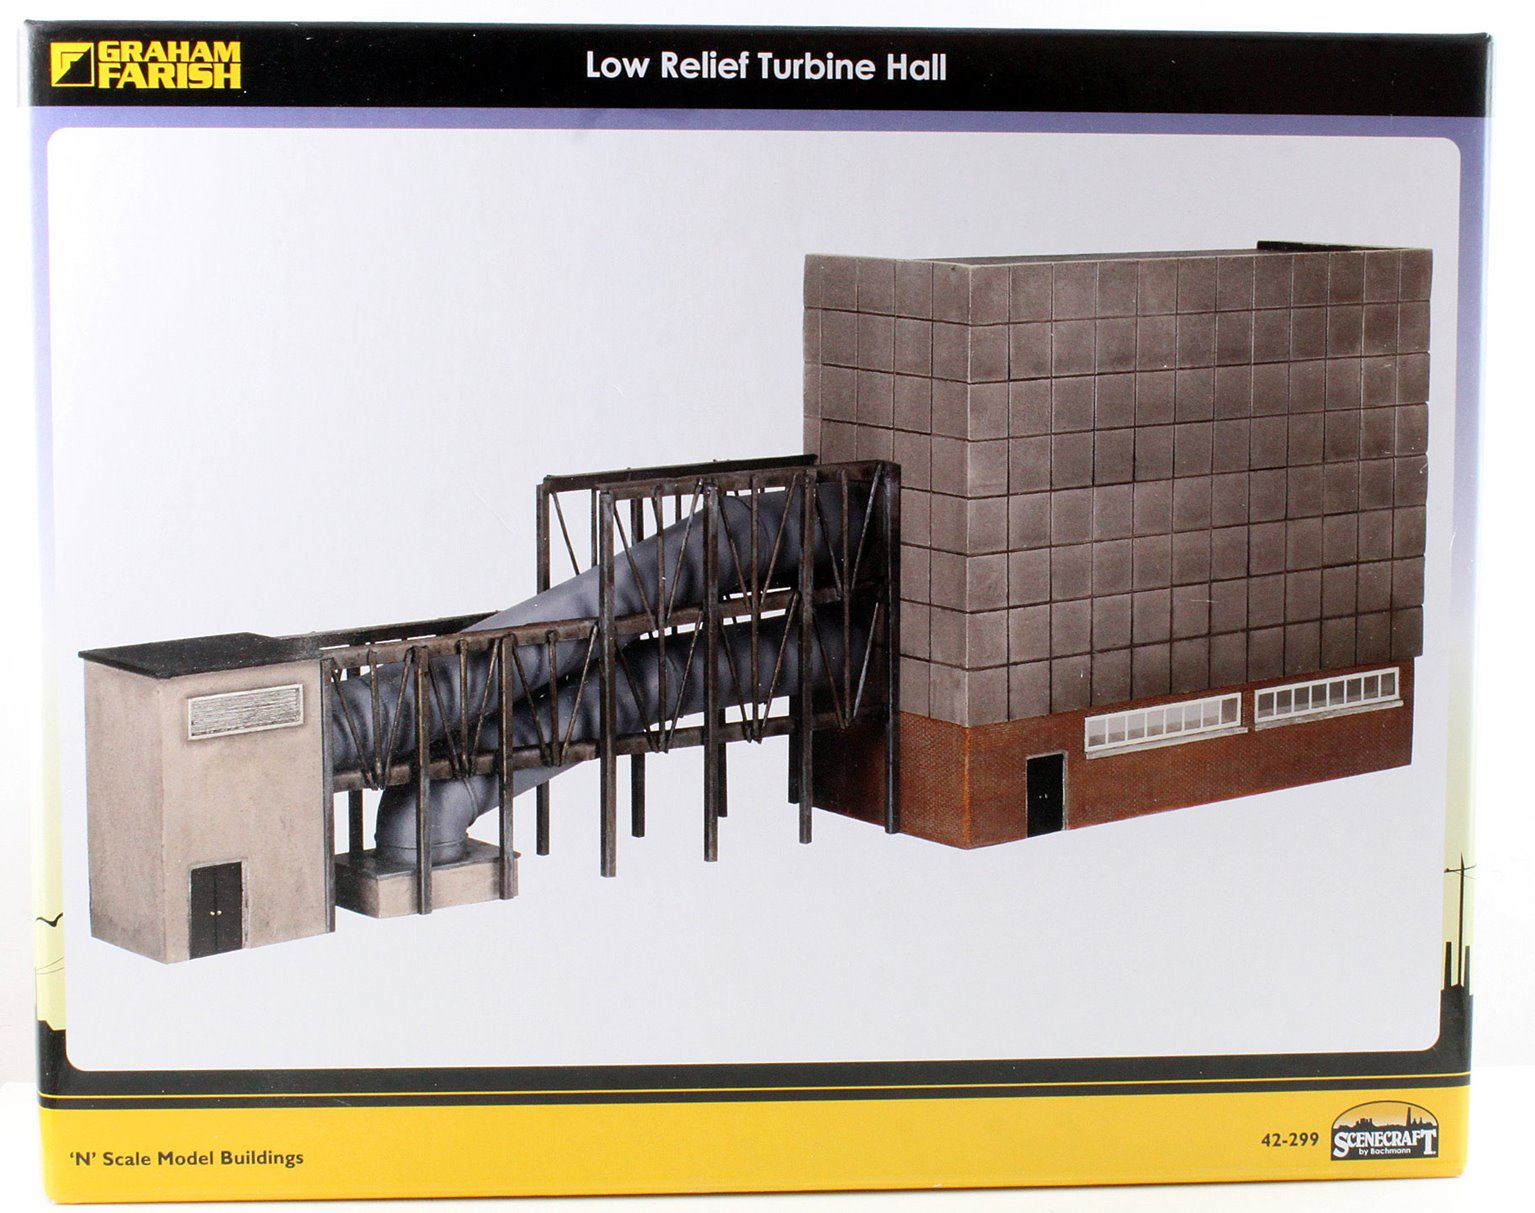 Low Relief Turbine Hall